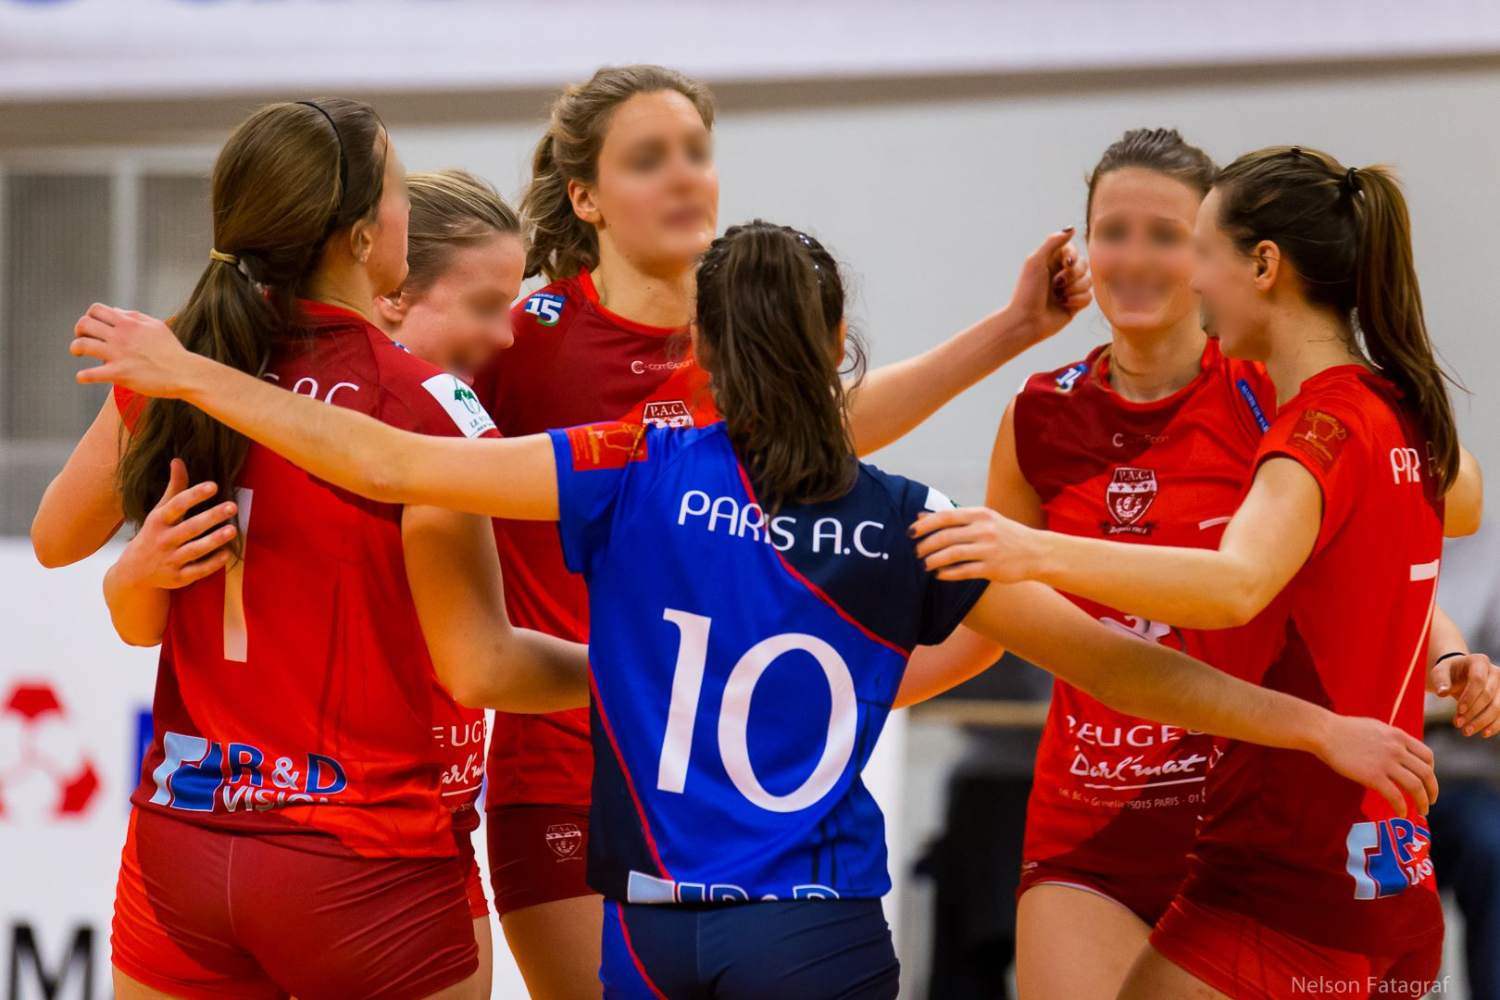 ensembles volley sublimés